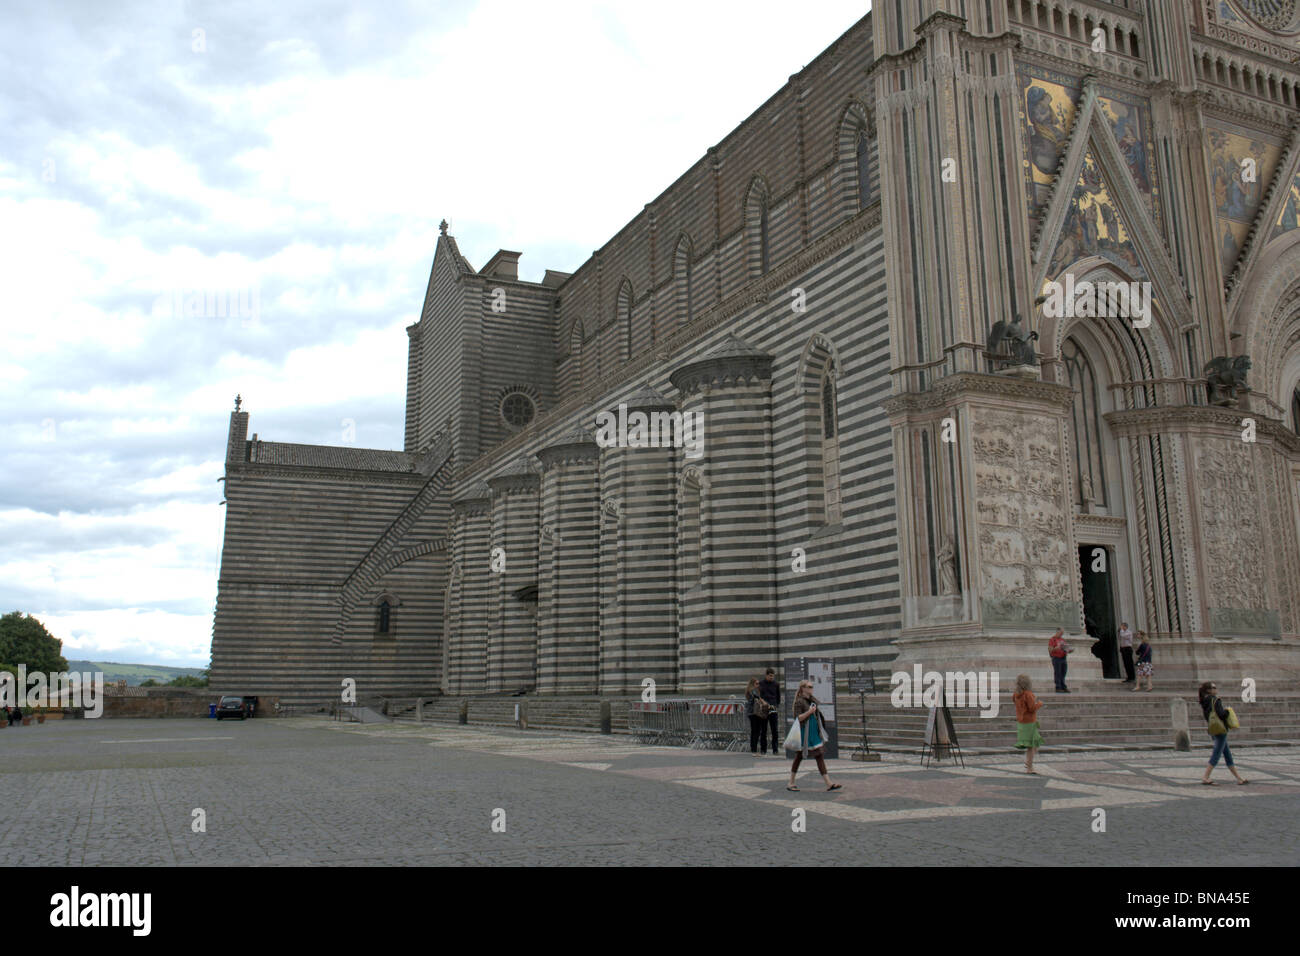 Orvieto, Italy. Side of the Duomo in two-tone stones (travertine and basalt) with buttresses. - Stock Image